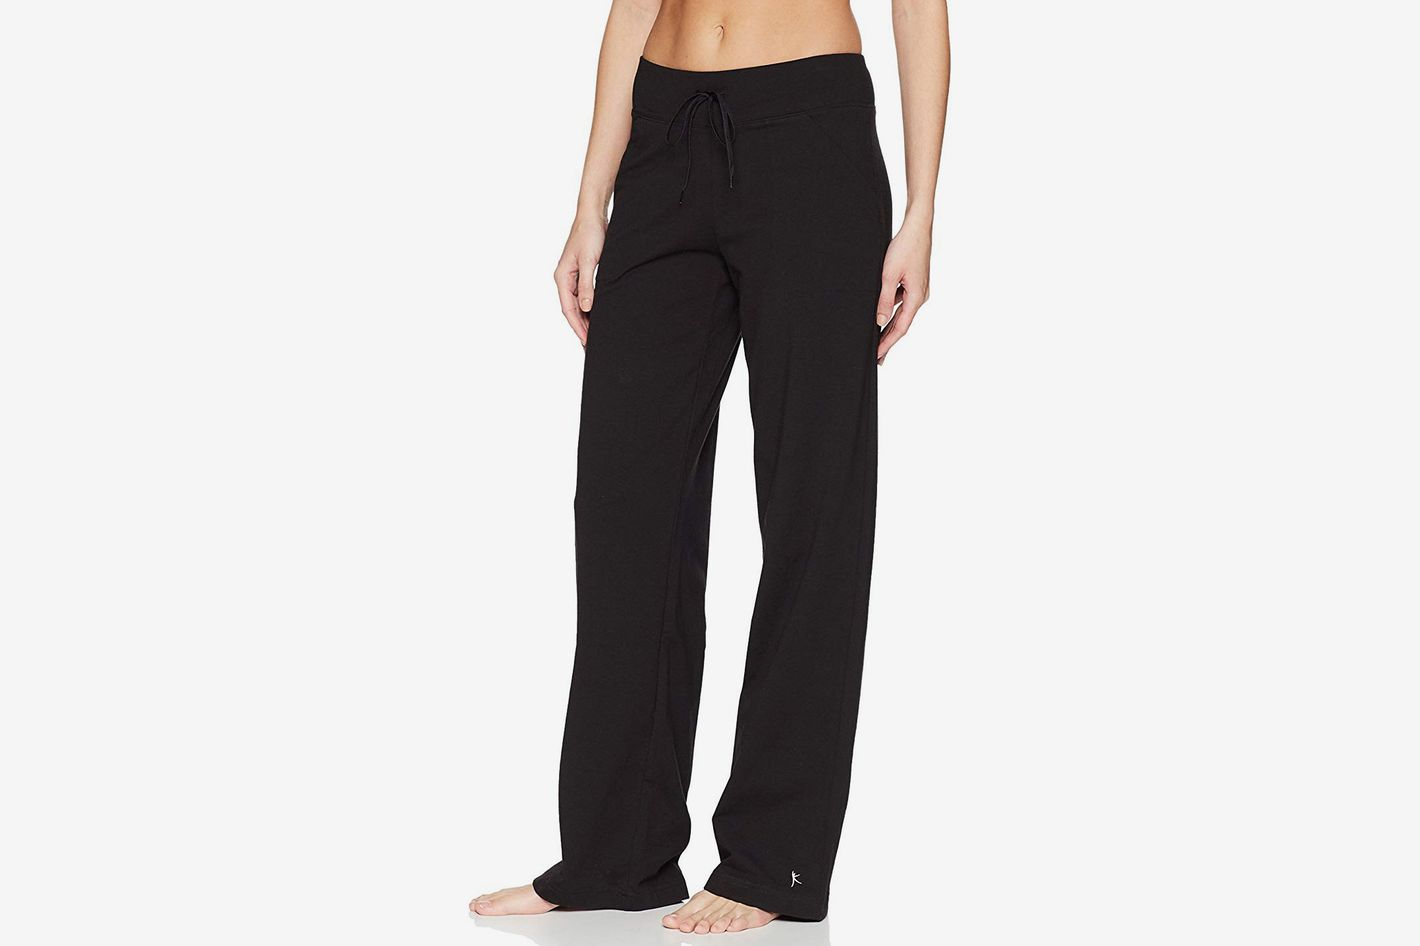 Danskin Now Women's Dri More Relaxed Pants, Petite